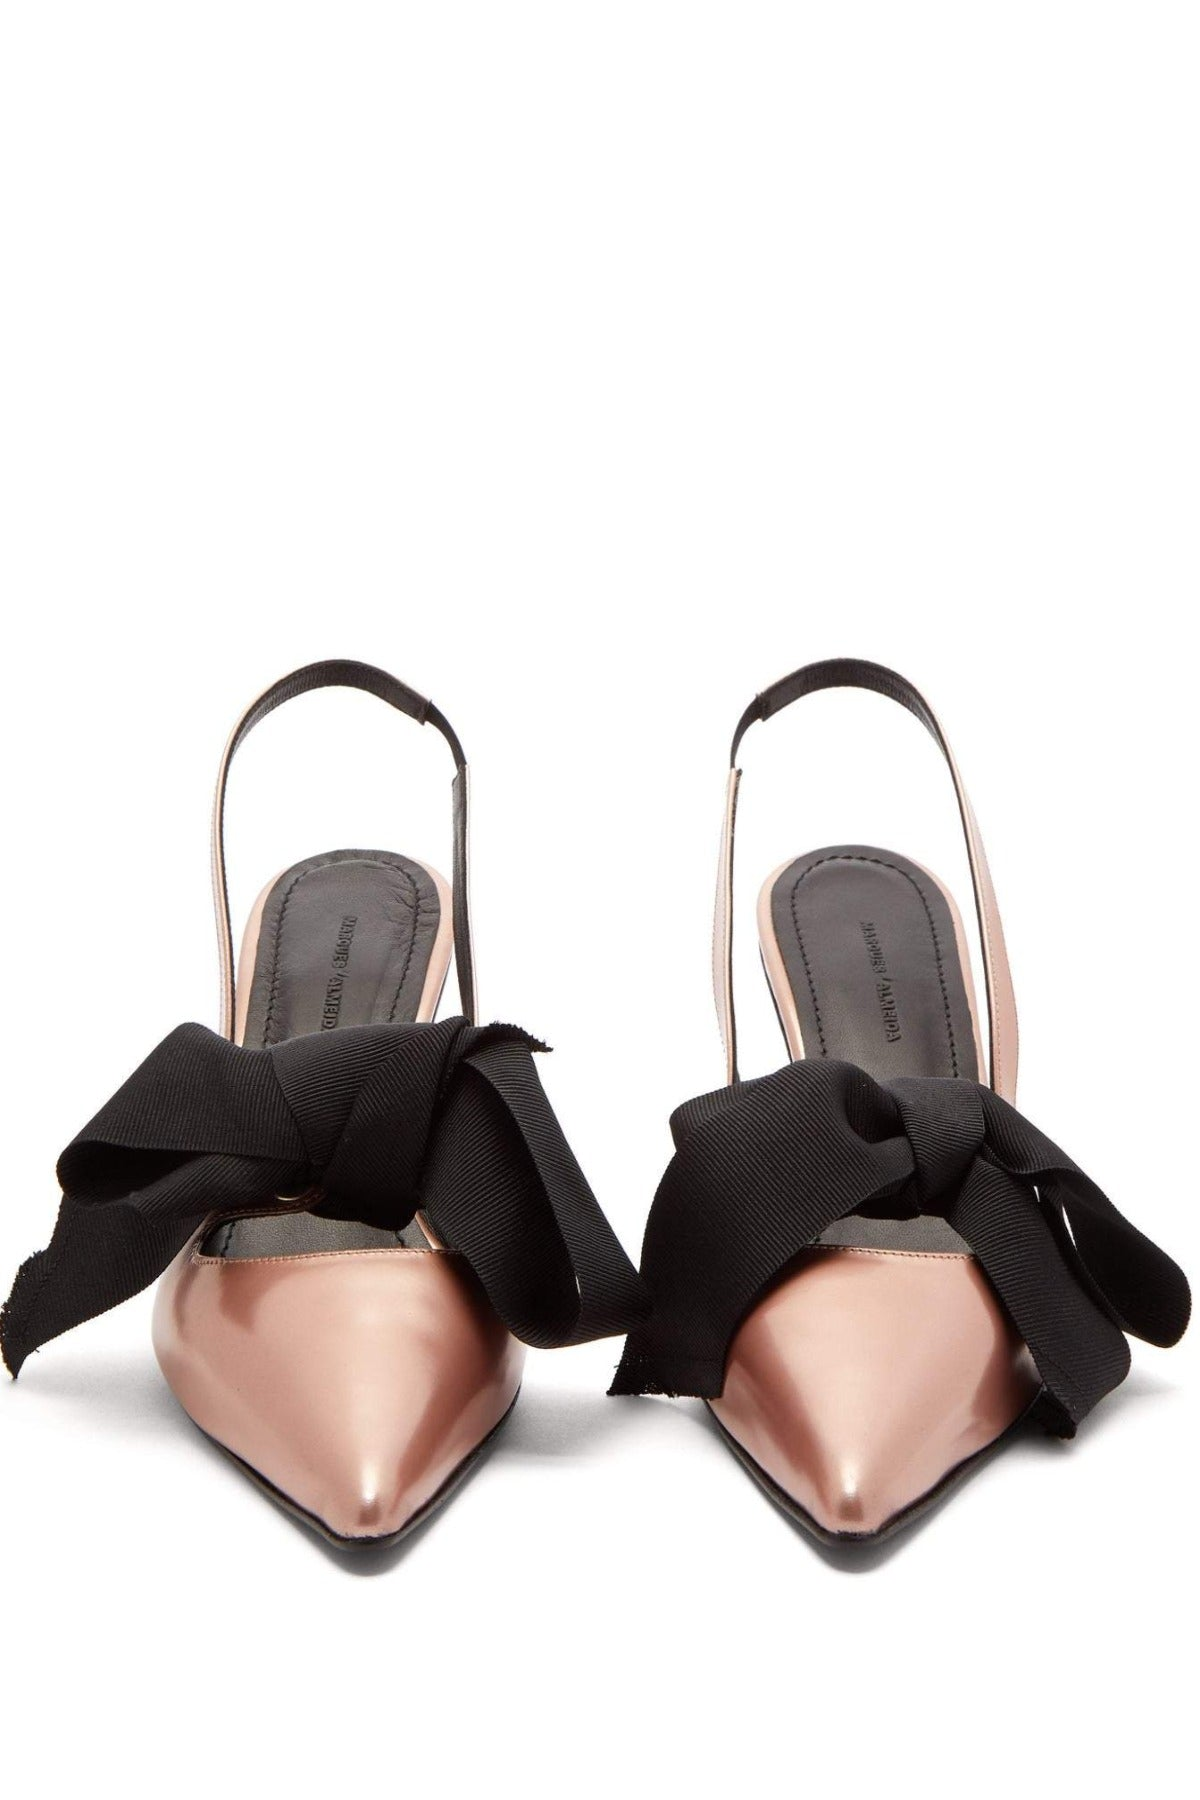 BOW SLINGBACKS W/ HOUR GLASS HEEL